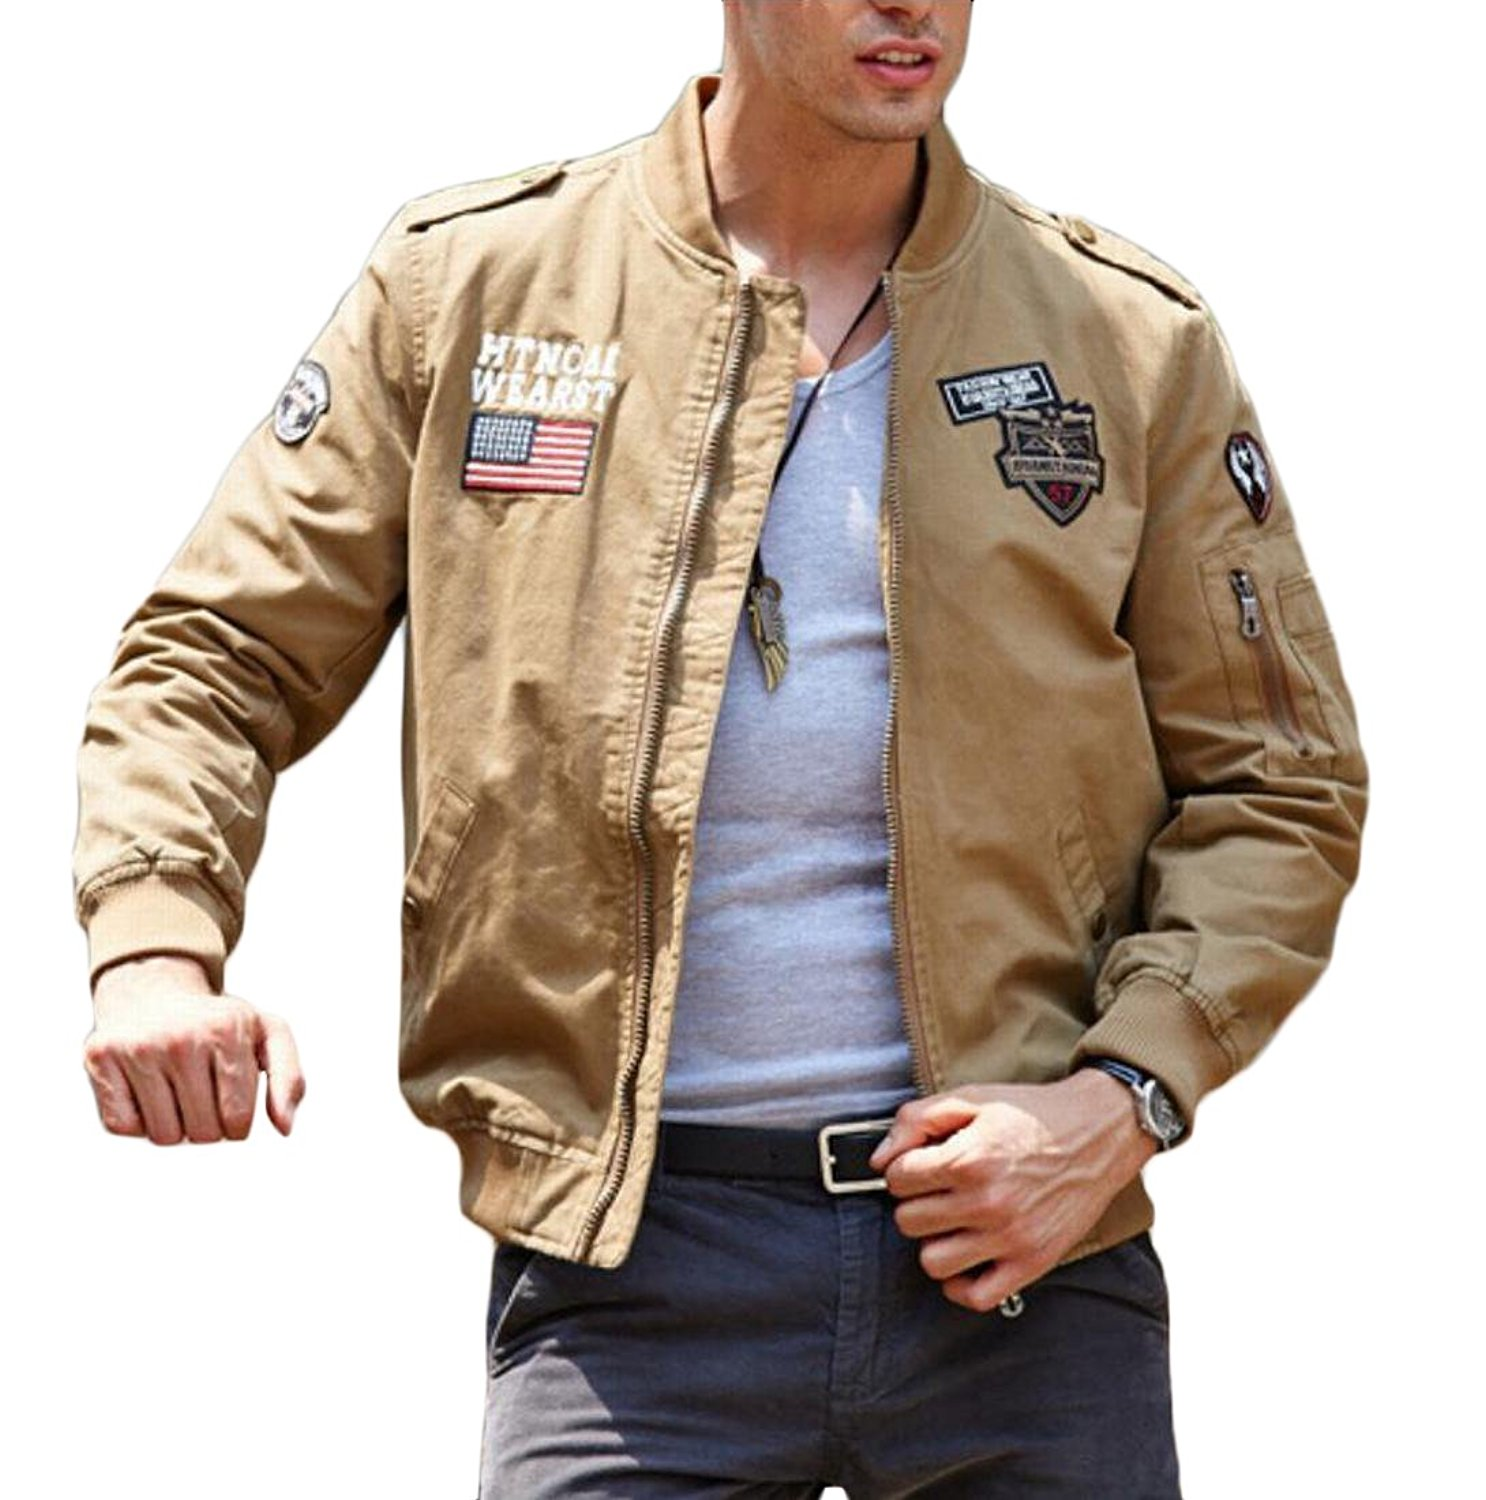 de0424ec304 Get Quotations · GAGA Men s Army Outdoor Military Special Ops Softshell  Tactical Jacket Hunting Jacket